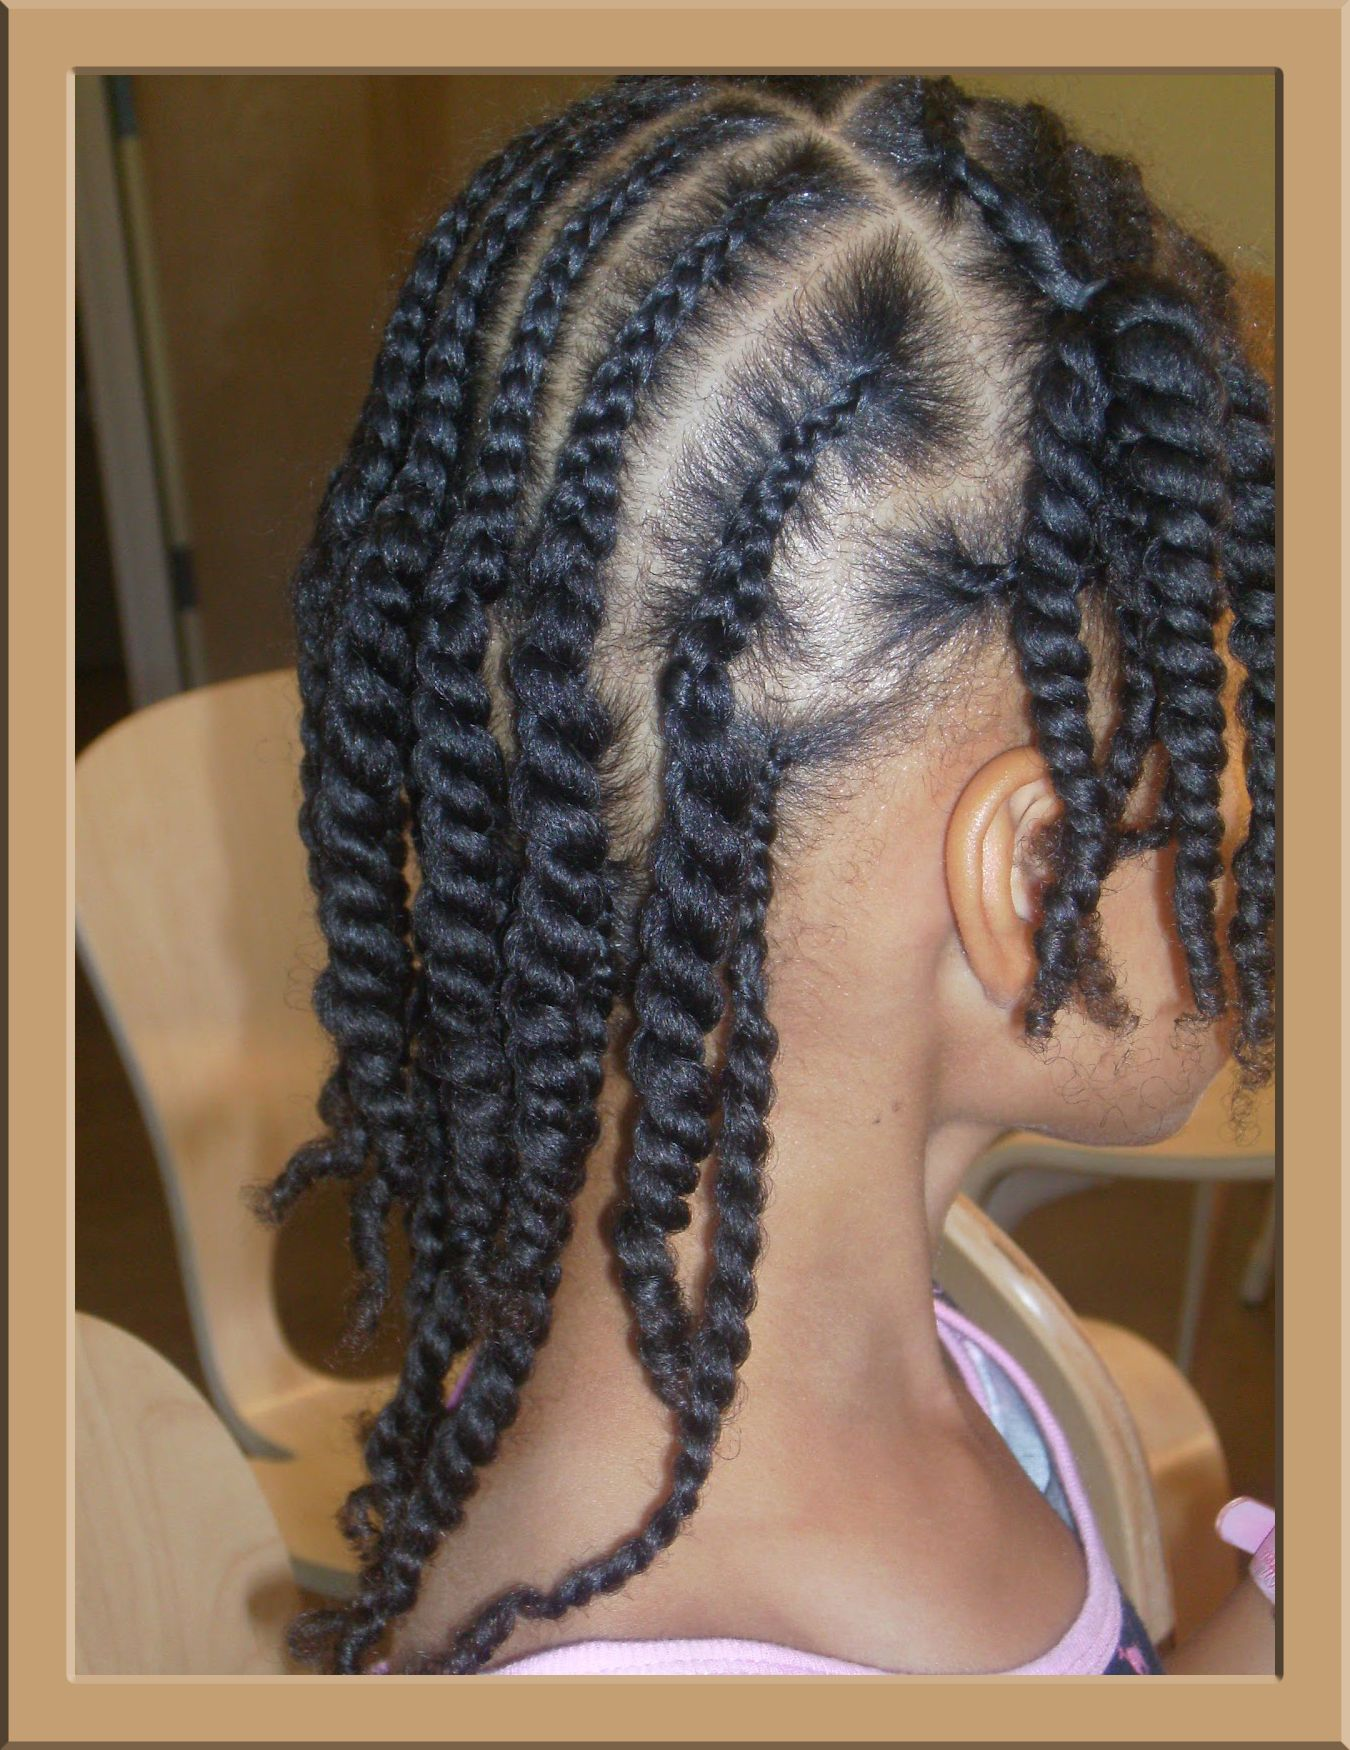 Favorite Hair Styles Resources for 2015 for 2021